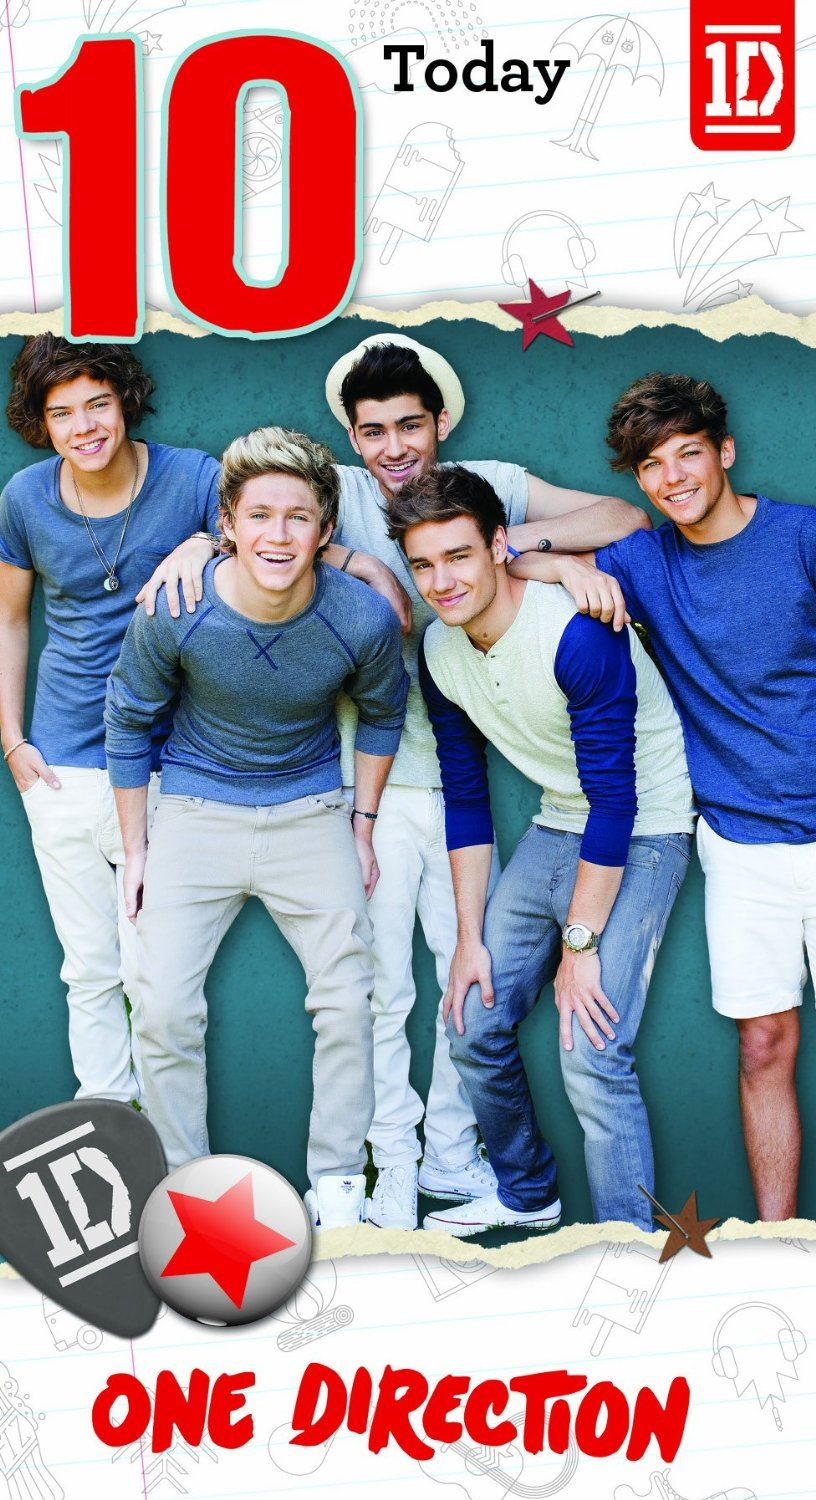 Which one direction member would date you in Brisbane